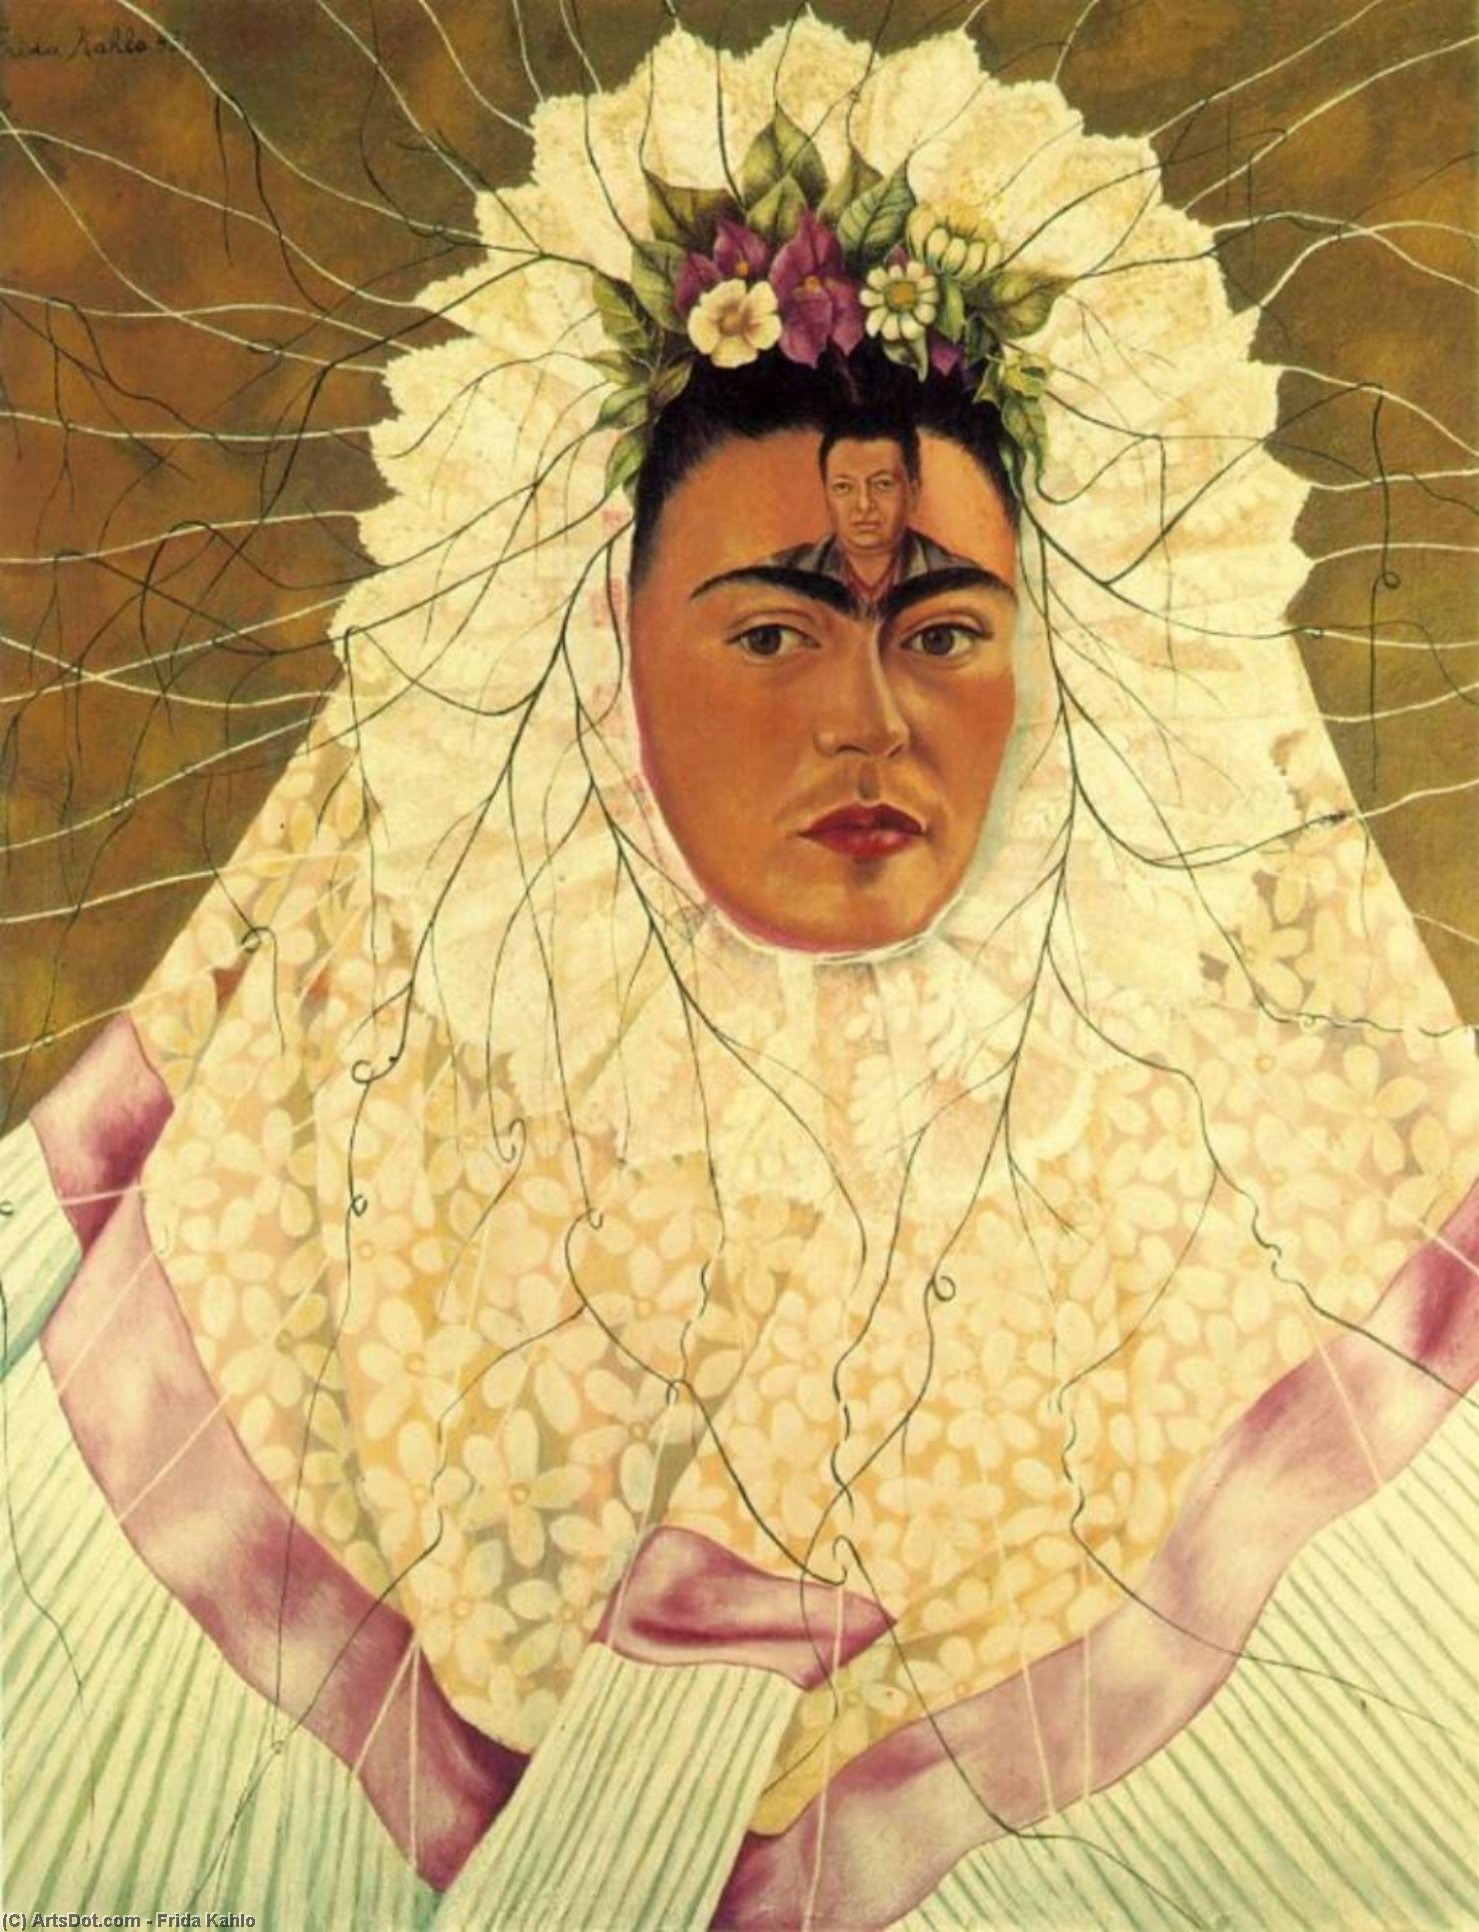 discussion on self portrait as woman recovering Inspiration in visual art: self-portrait with thorn necklace and she spent three months recovering in a body cast and suffered from pain and health problems.